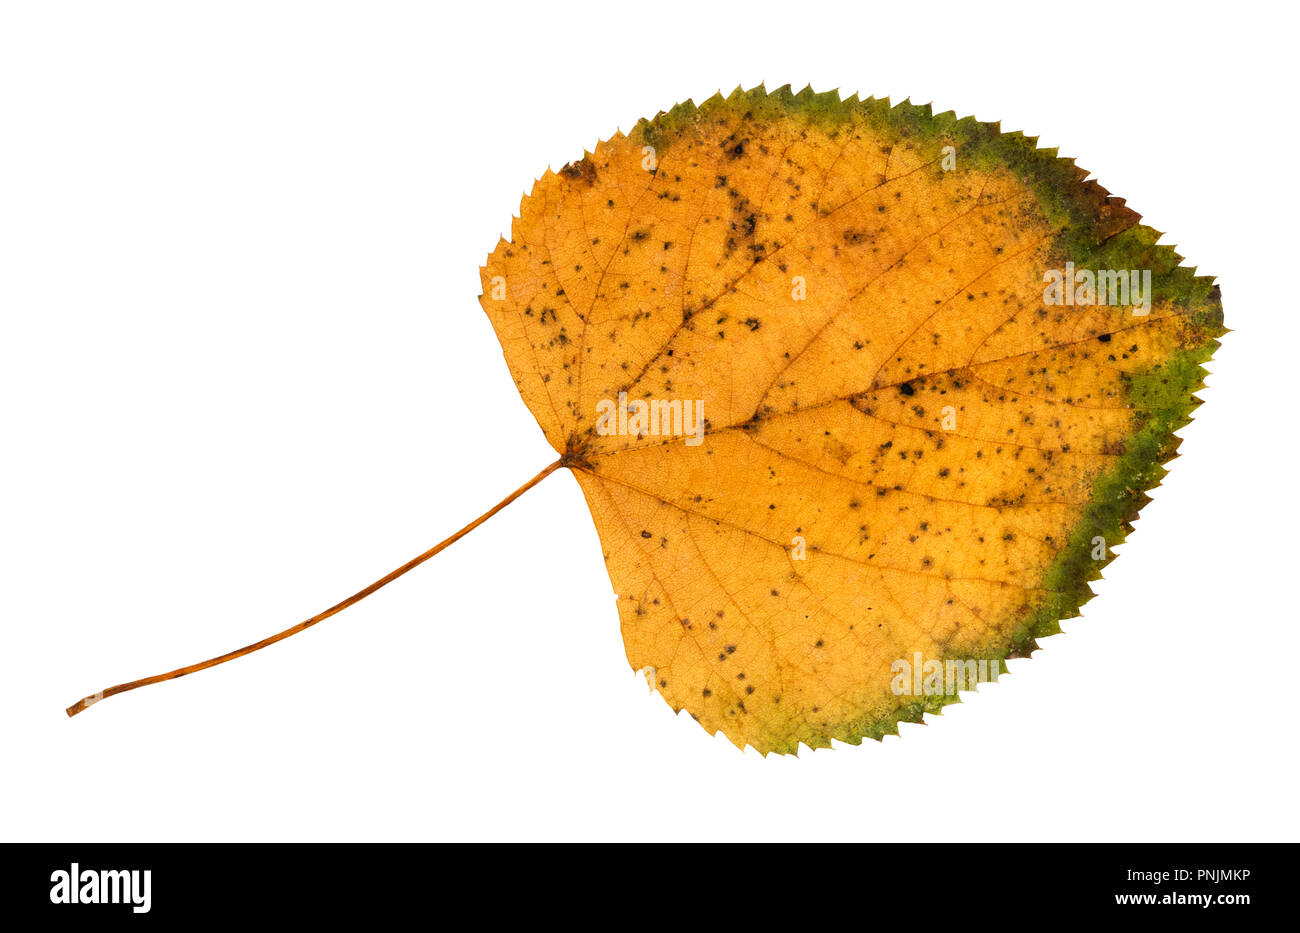 dried fallen autumn leaf of lime tree cut out on white background Stock Photo